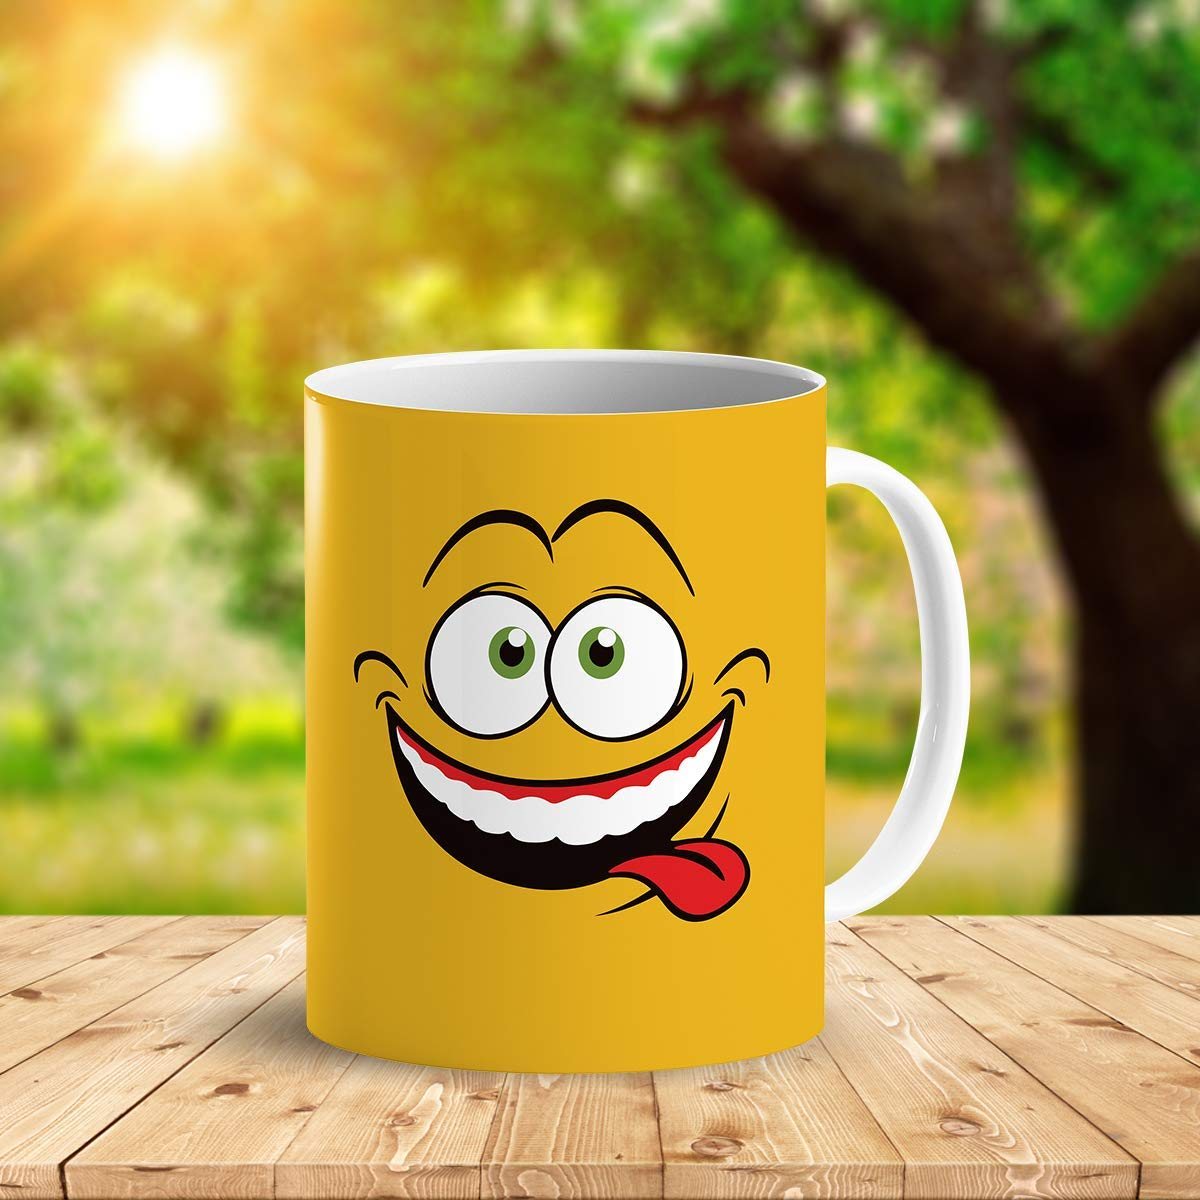 Heat Sensitive Color Changing Coffee Mug Funny Coffee Cup Yellow Drunk Funny Face Design Funny Gift Idea B079FWN7ZQ 8